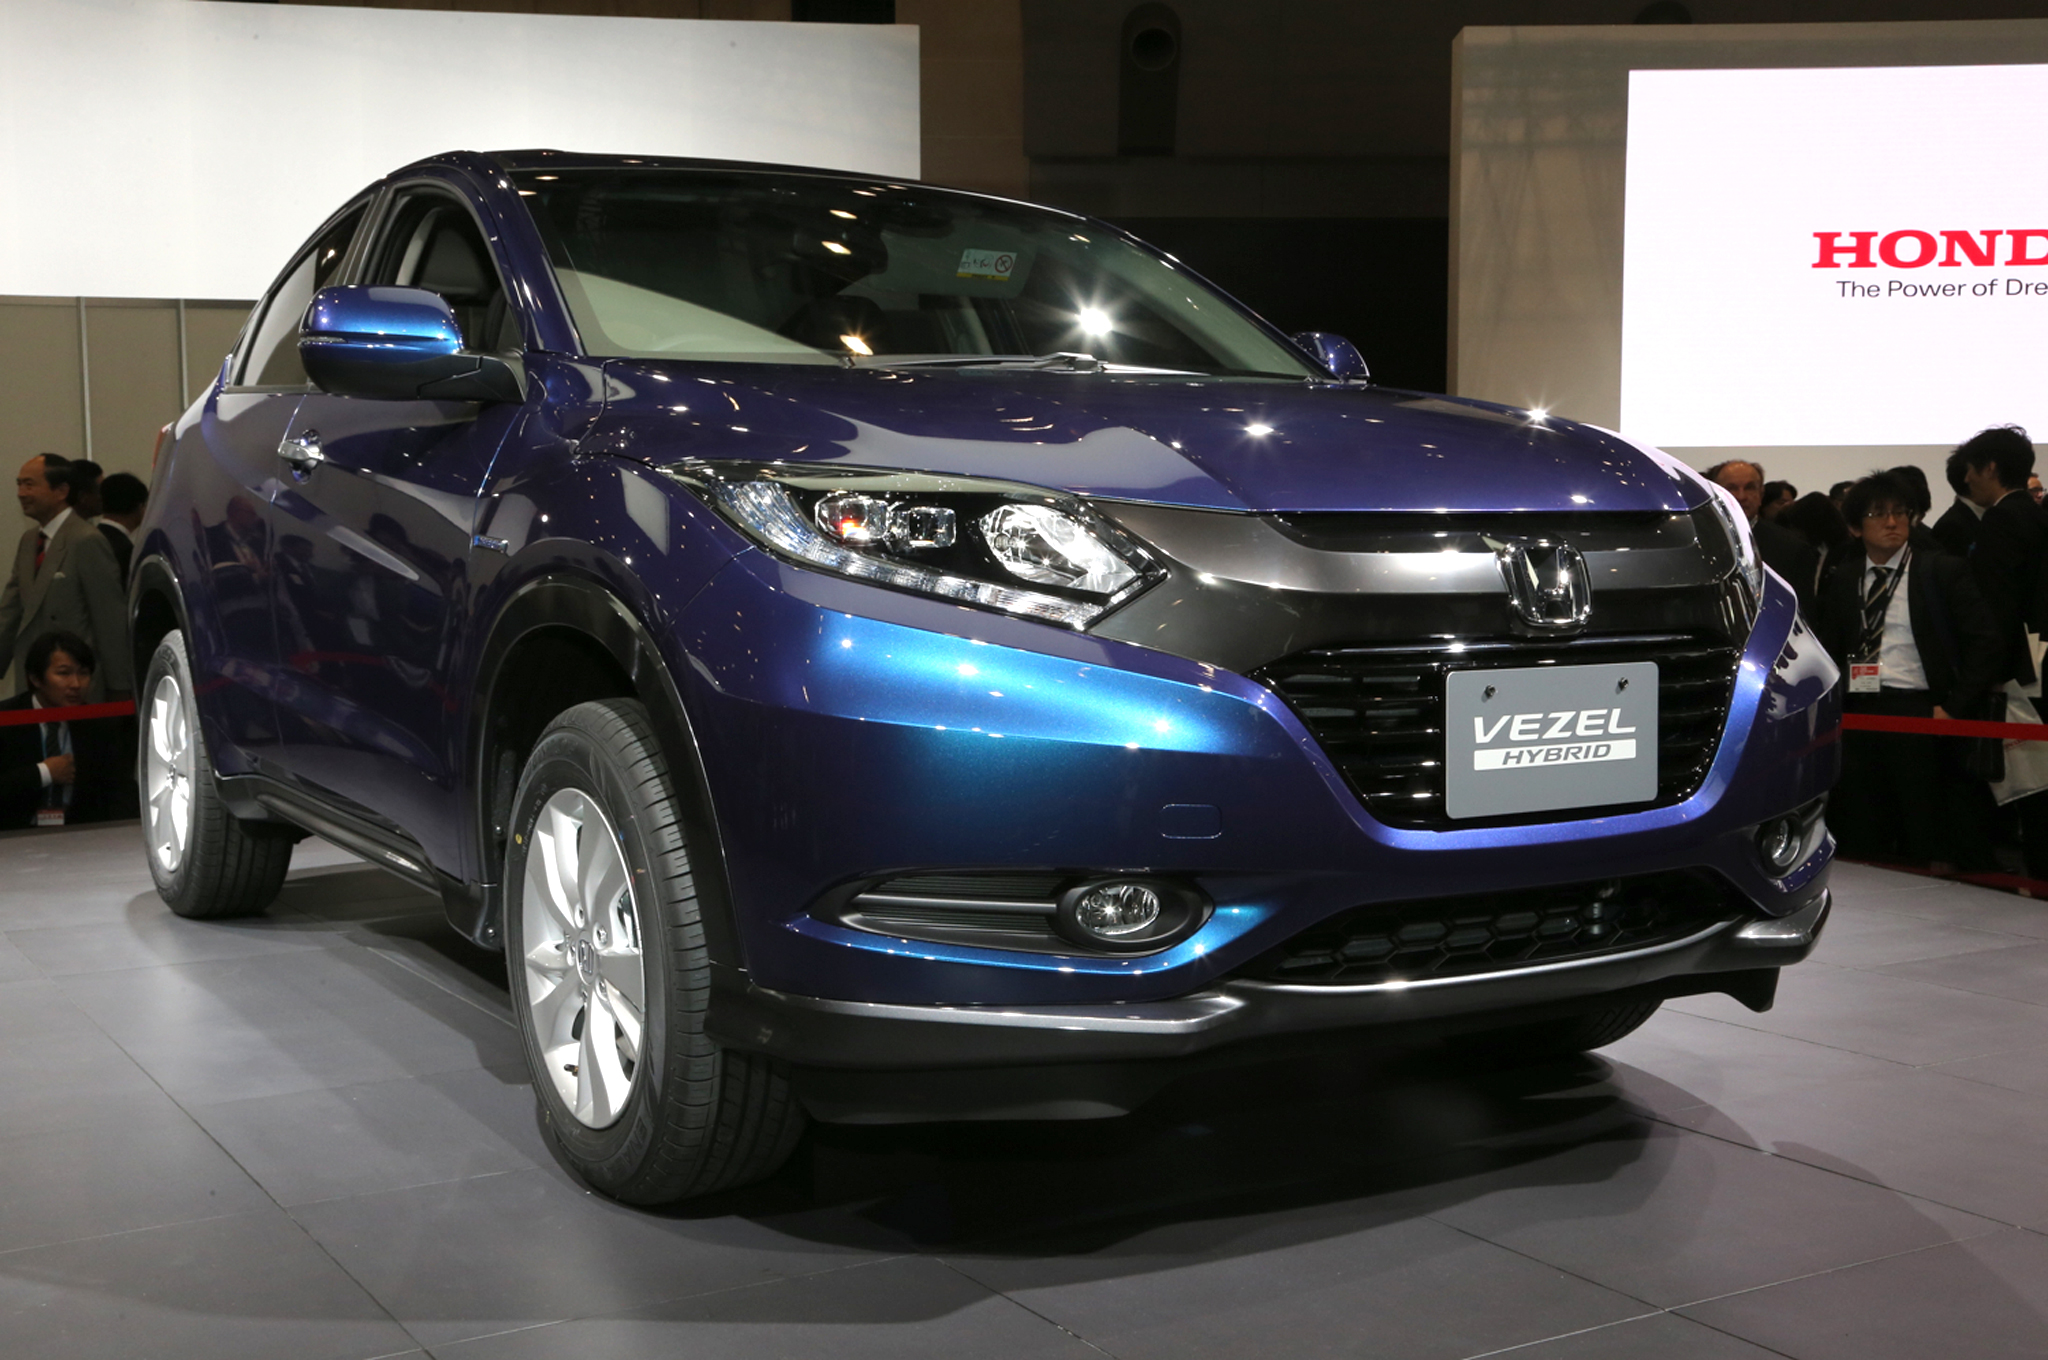 Honda Vezel Compact Crossover Likely for U.S. - 2013 Tokyo